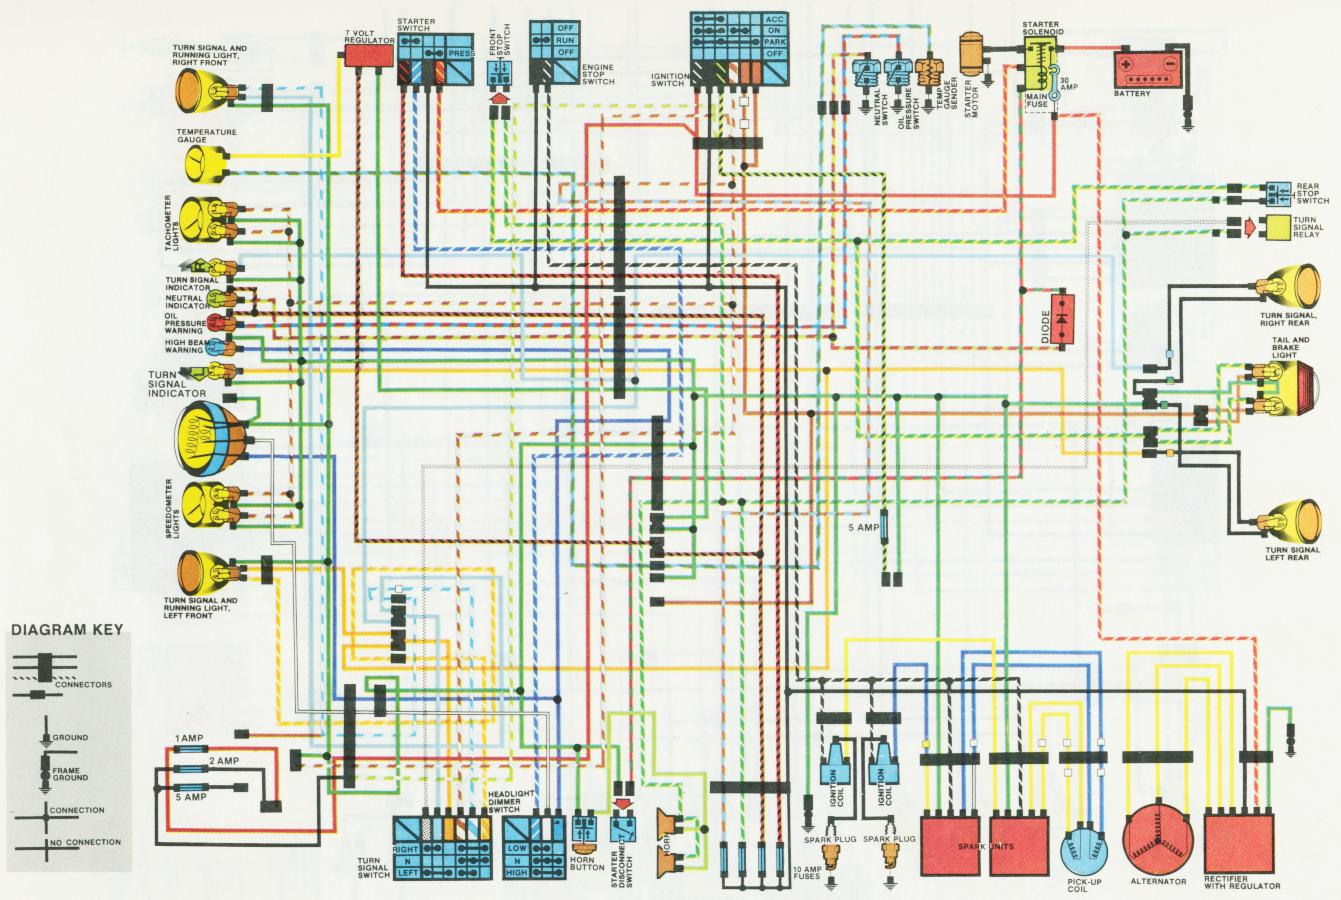 1982 Honda Cx500 Wiring Diagram - Wiring Diagramscase.psicologoafaenza.it